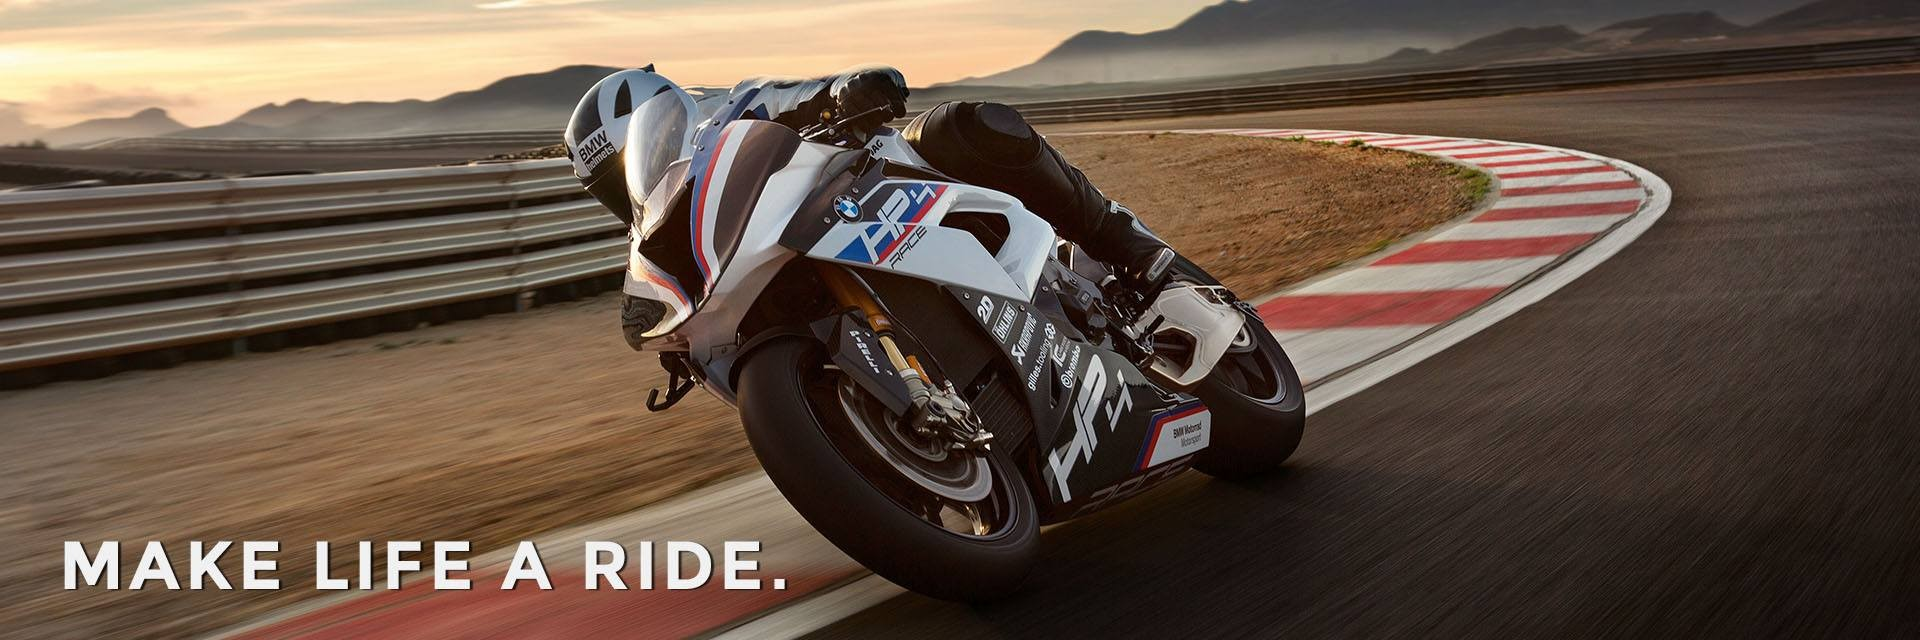 Make Life A Ride | BMW Motorcycles For Sale | Grass Roots BMW Motorcycle in Cape Girardeau, MO